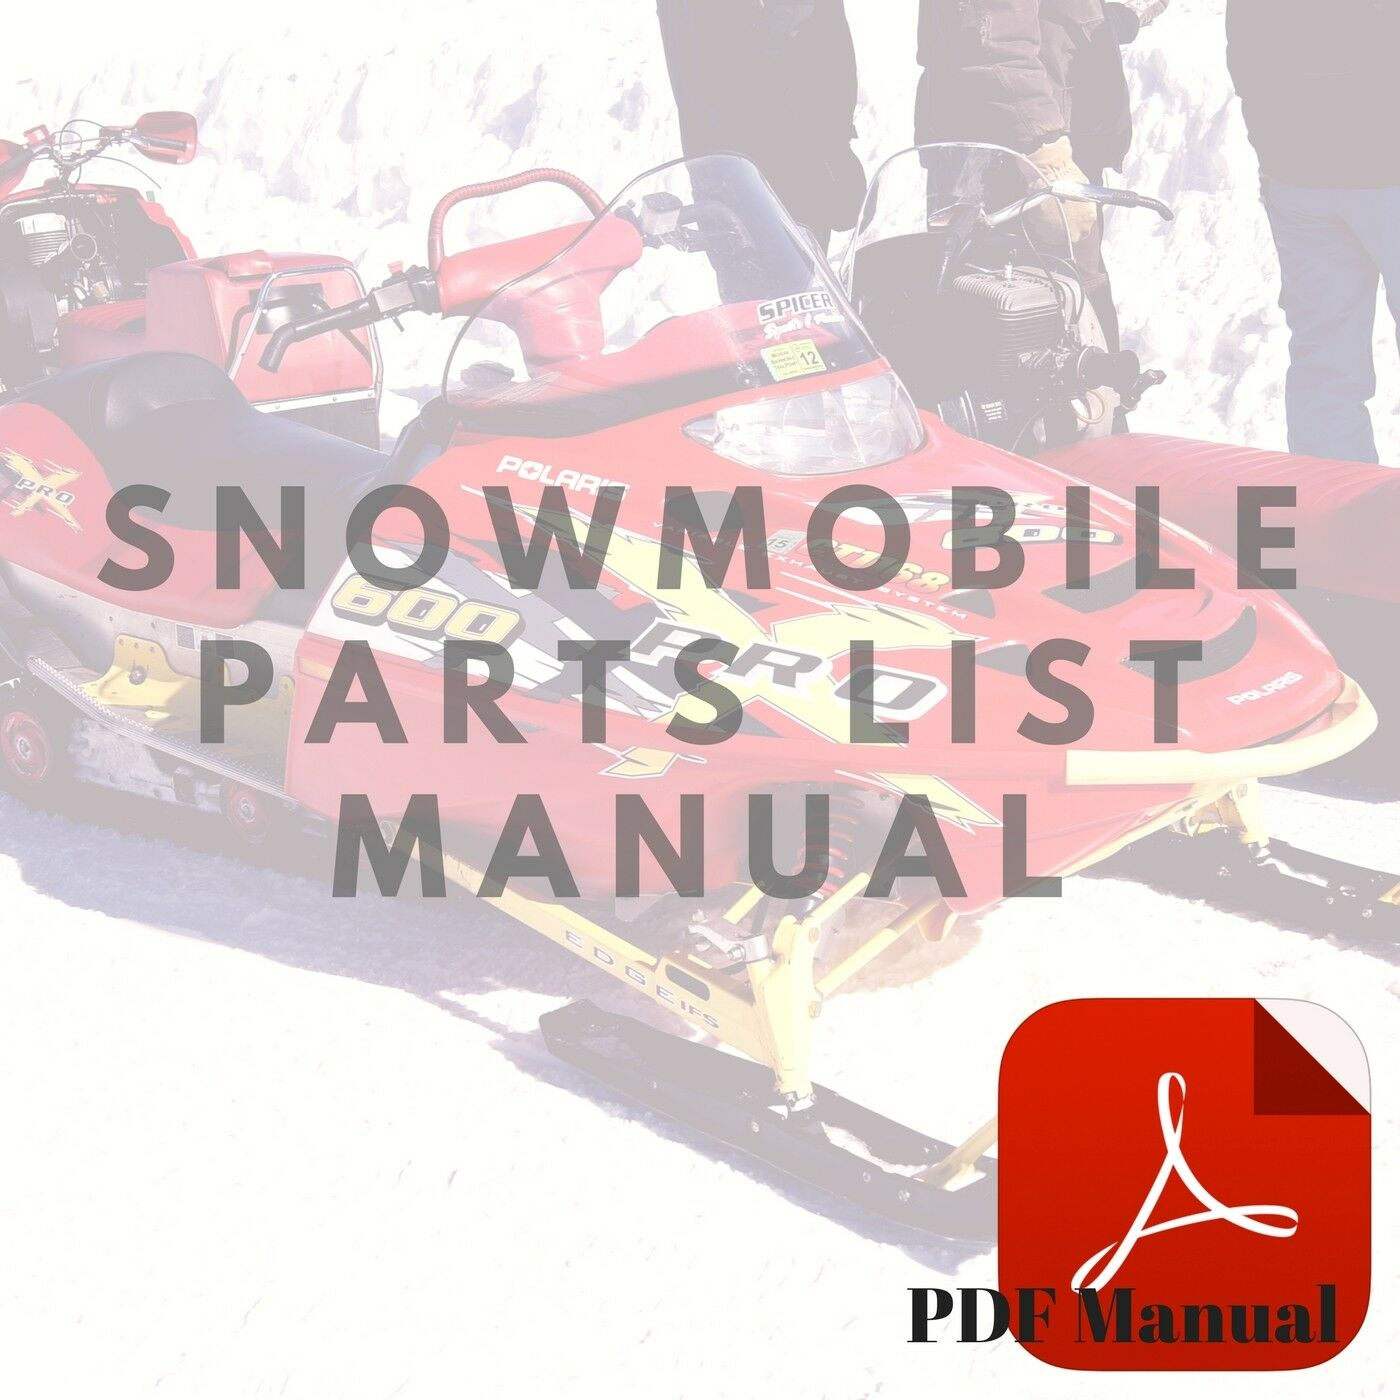 Yamaha 1979-1984 ET300 Enticer Snowmobile Parts List or Owner's Manual on CD